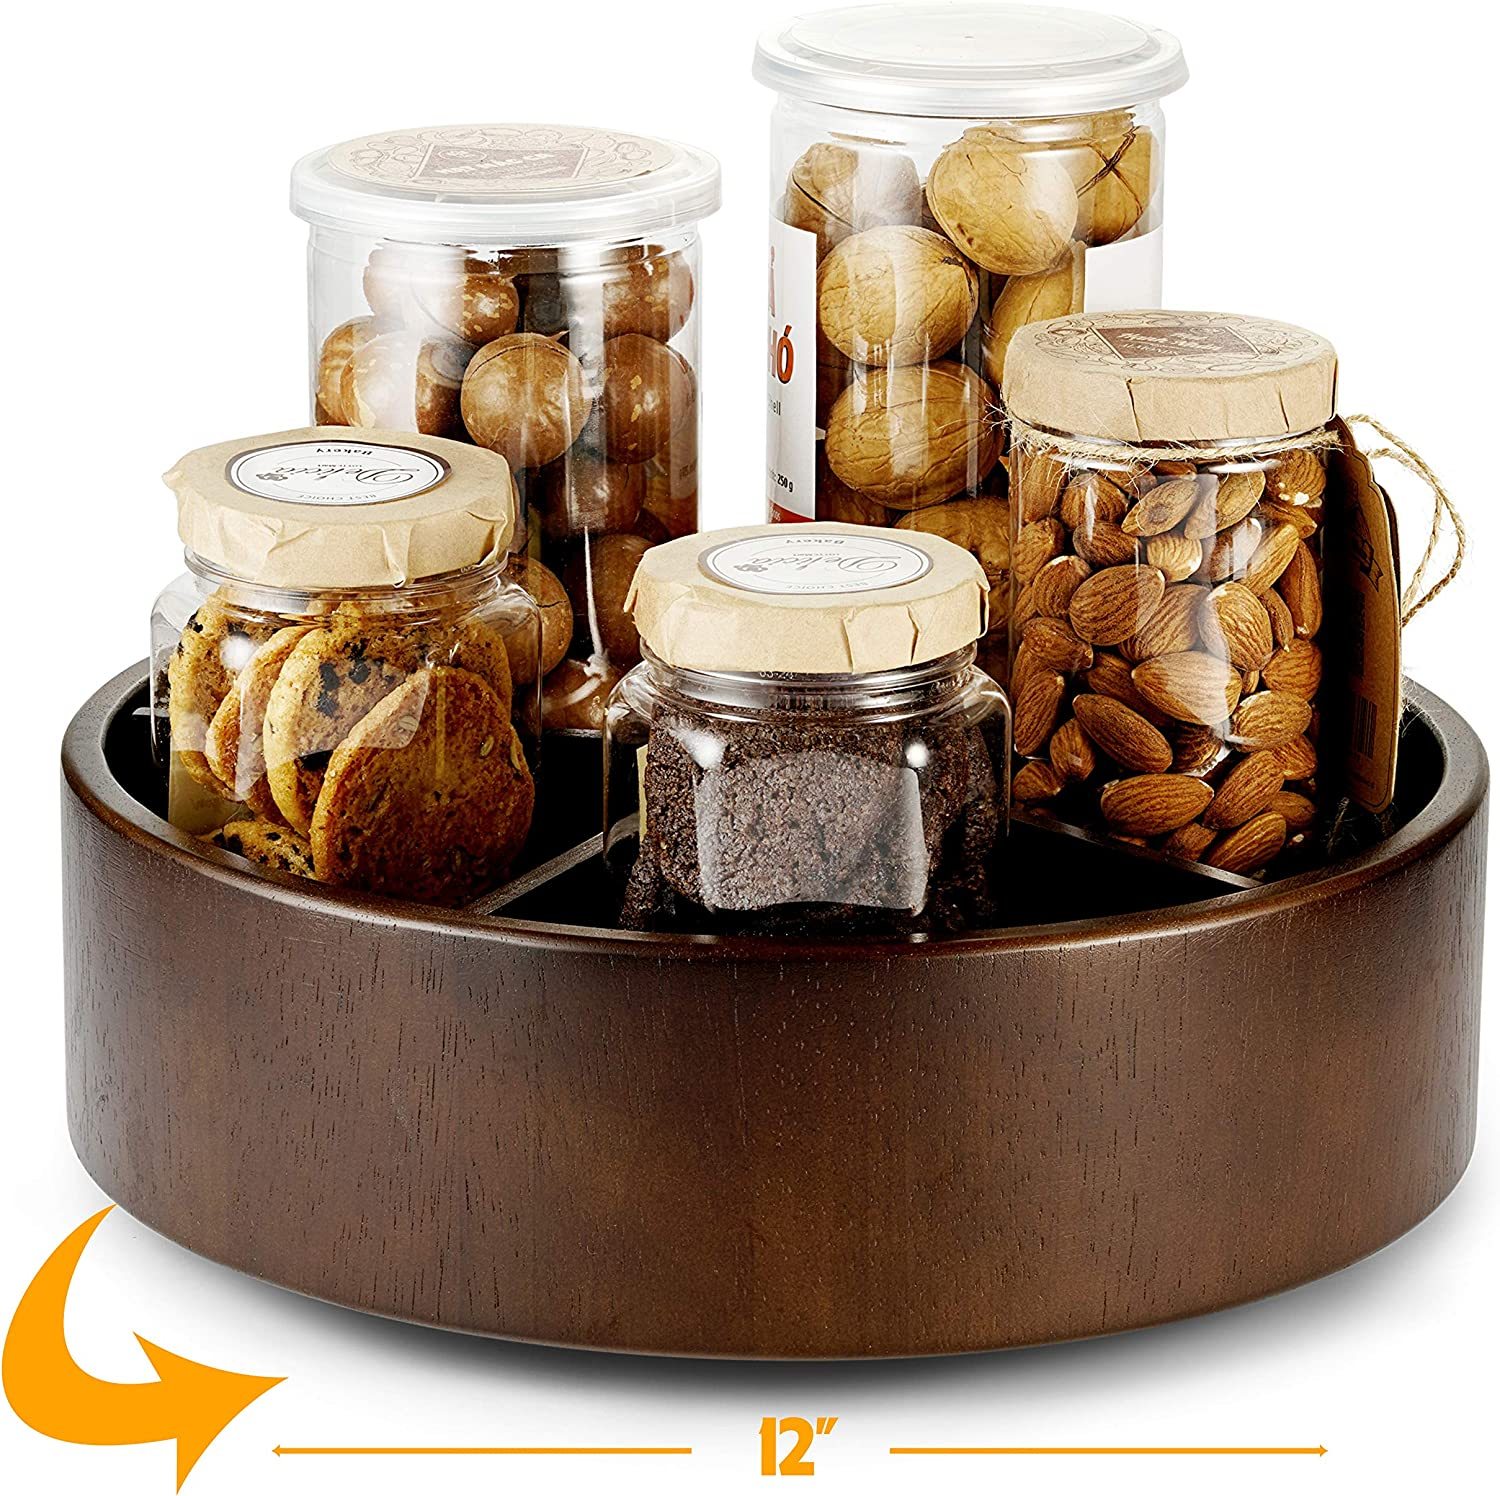 "12"" Lazy Susan Turntable Wood - Kitchen Turntable Storage Food Bin Container - Divided Spinning Organizer - 5 Sections - for Kitchen Cabinets, Pantry, Refrigerator, Countertop (Walnut Color)"